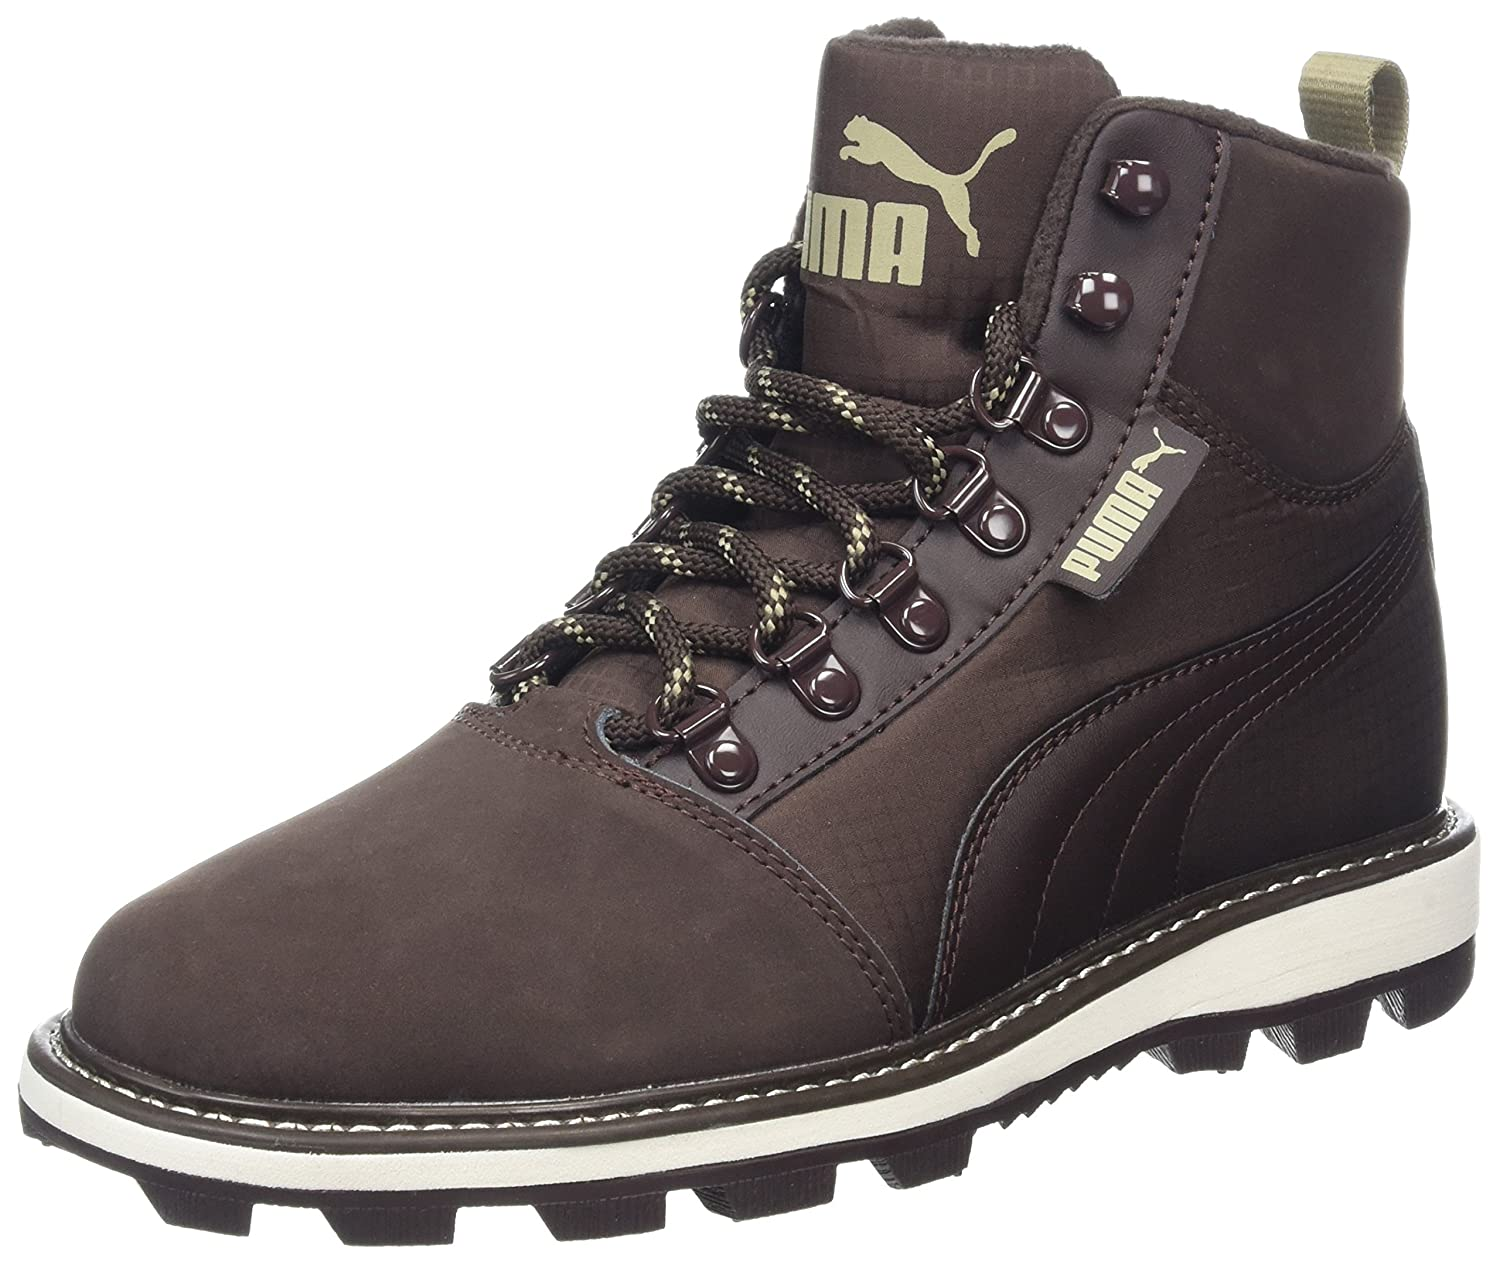 Puma Tatau Fur Boot 2, Zapatillas Unisex Adulto, Marrón (Black Coffee-Chocolate Brown), 38 EU 38 EU|Marrón (Black Coffee-chocolate Brown)